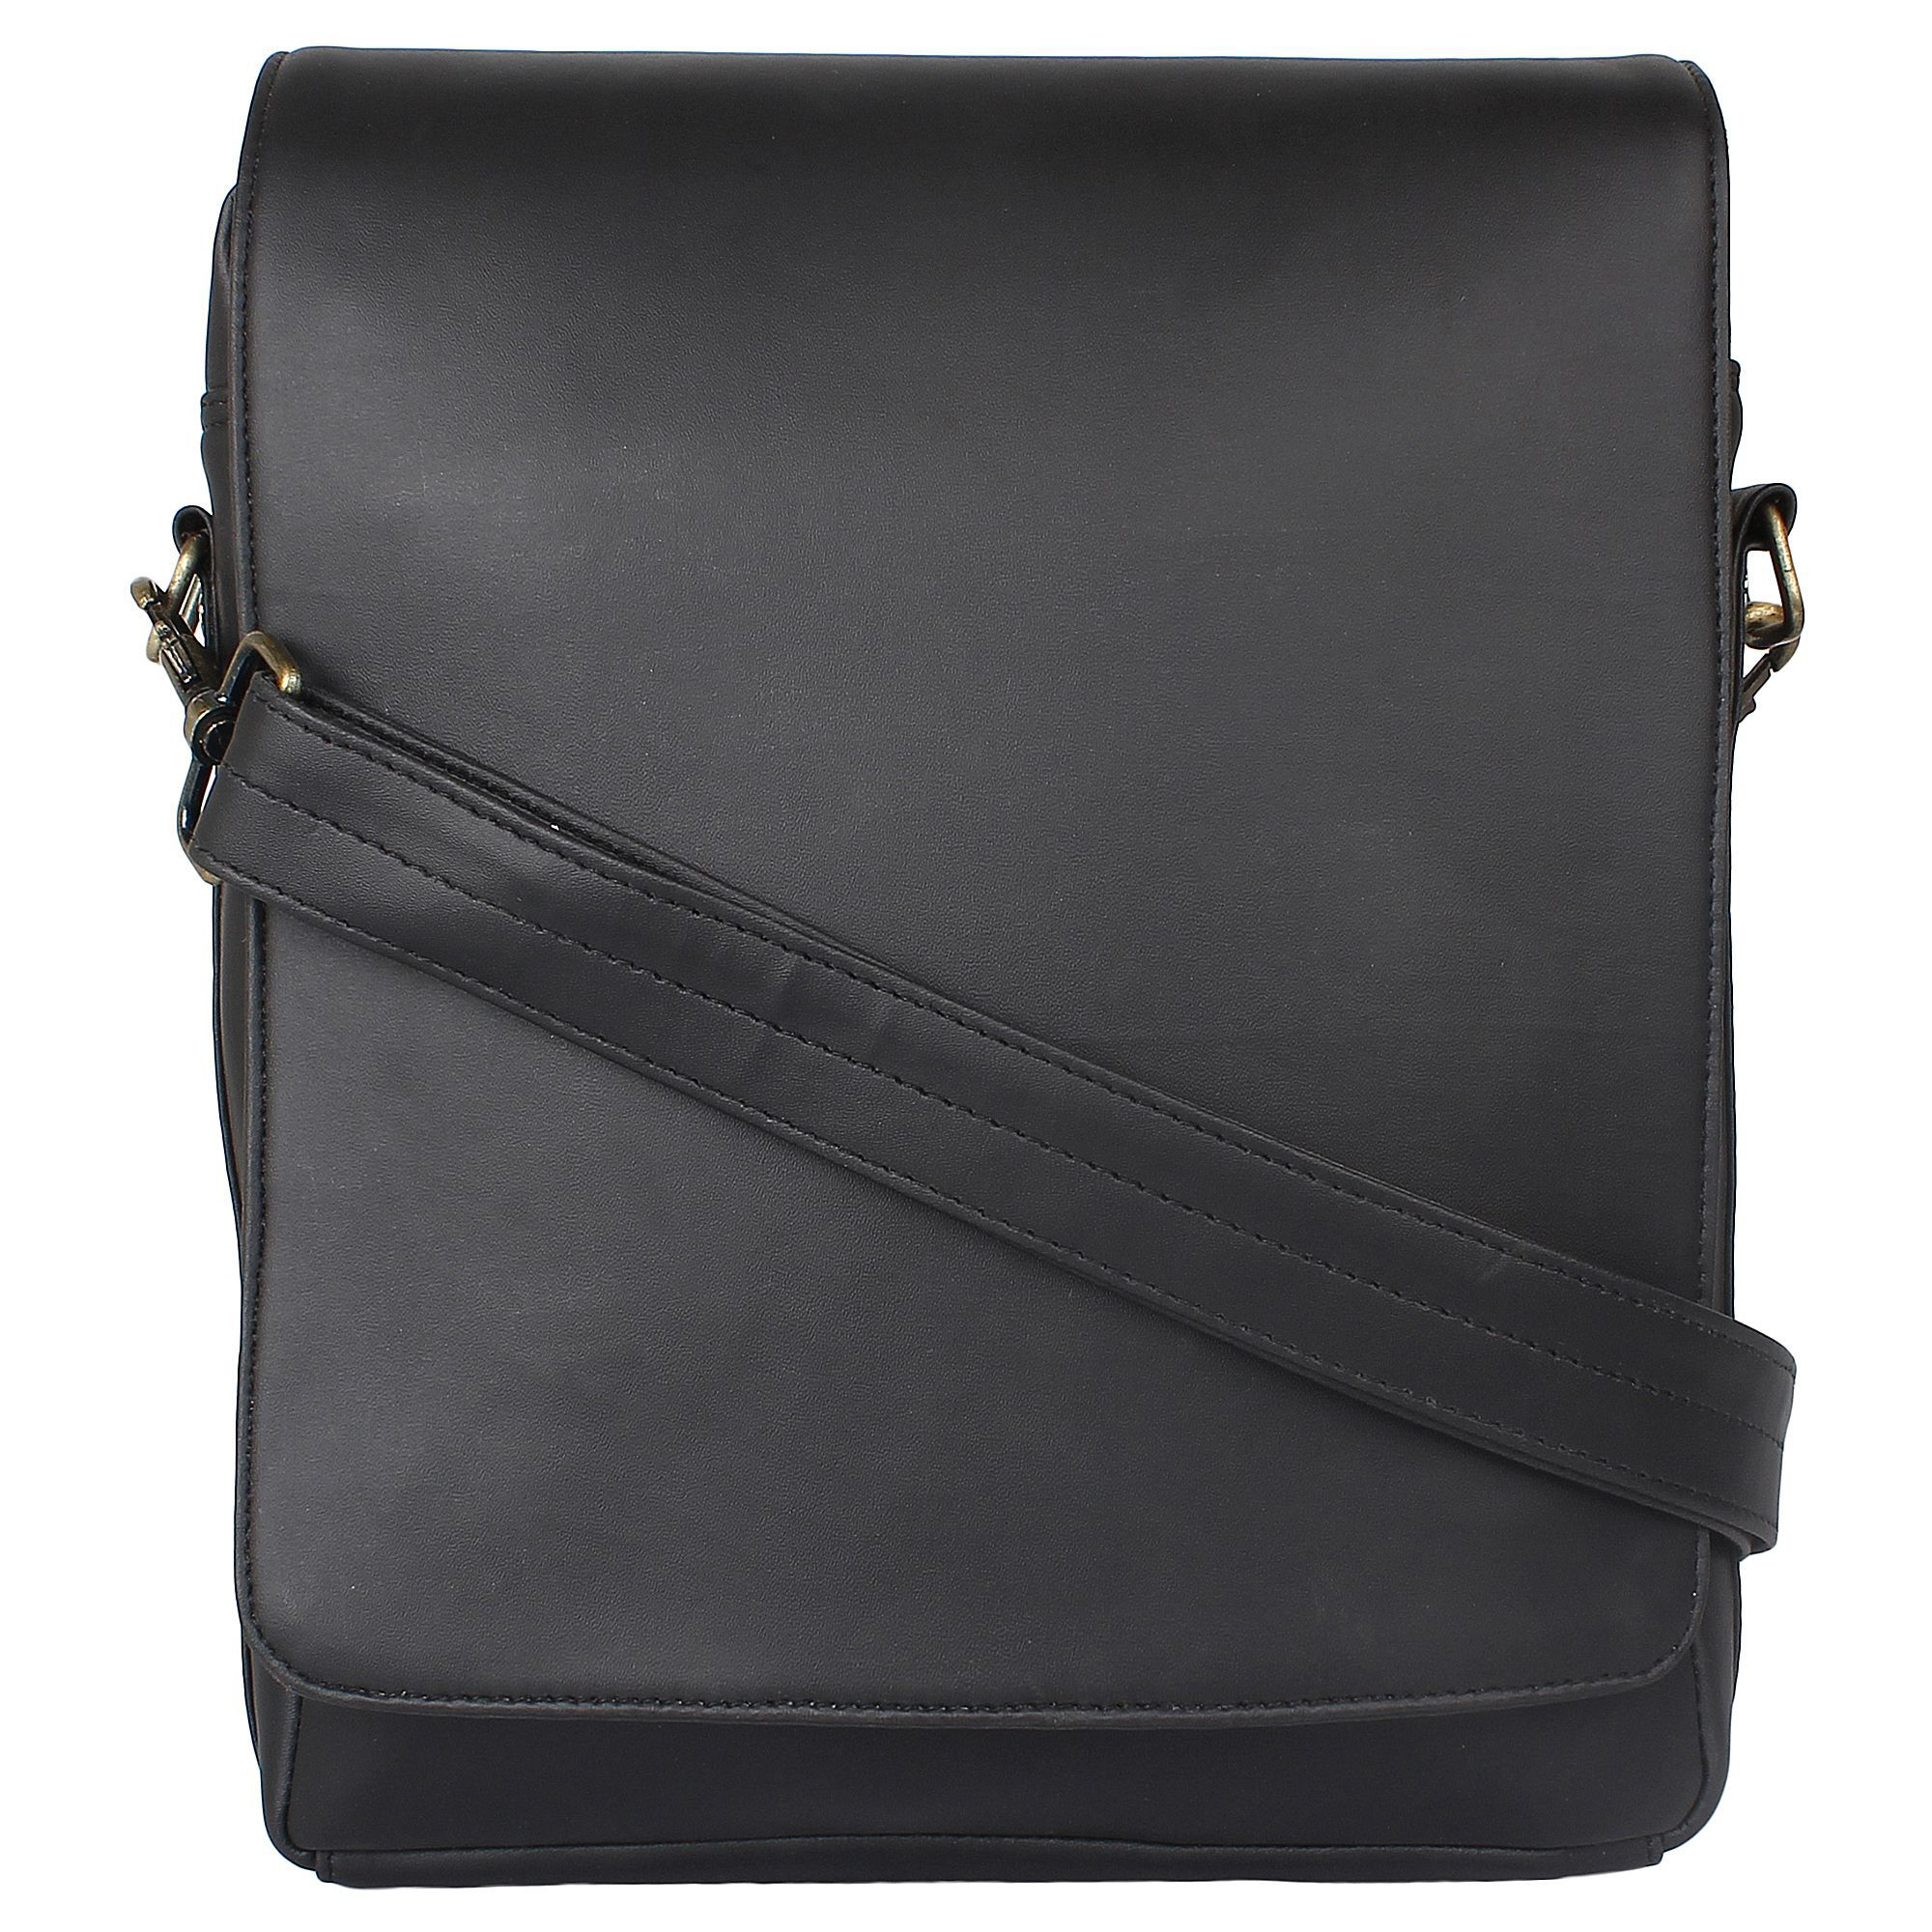 P&YFASHION Black P.U. Casual Messenger Bag